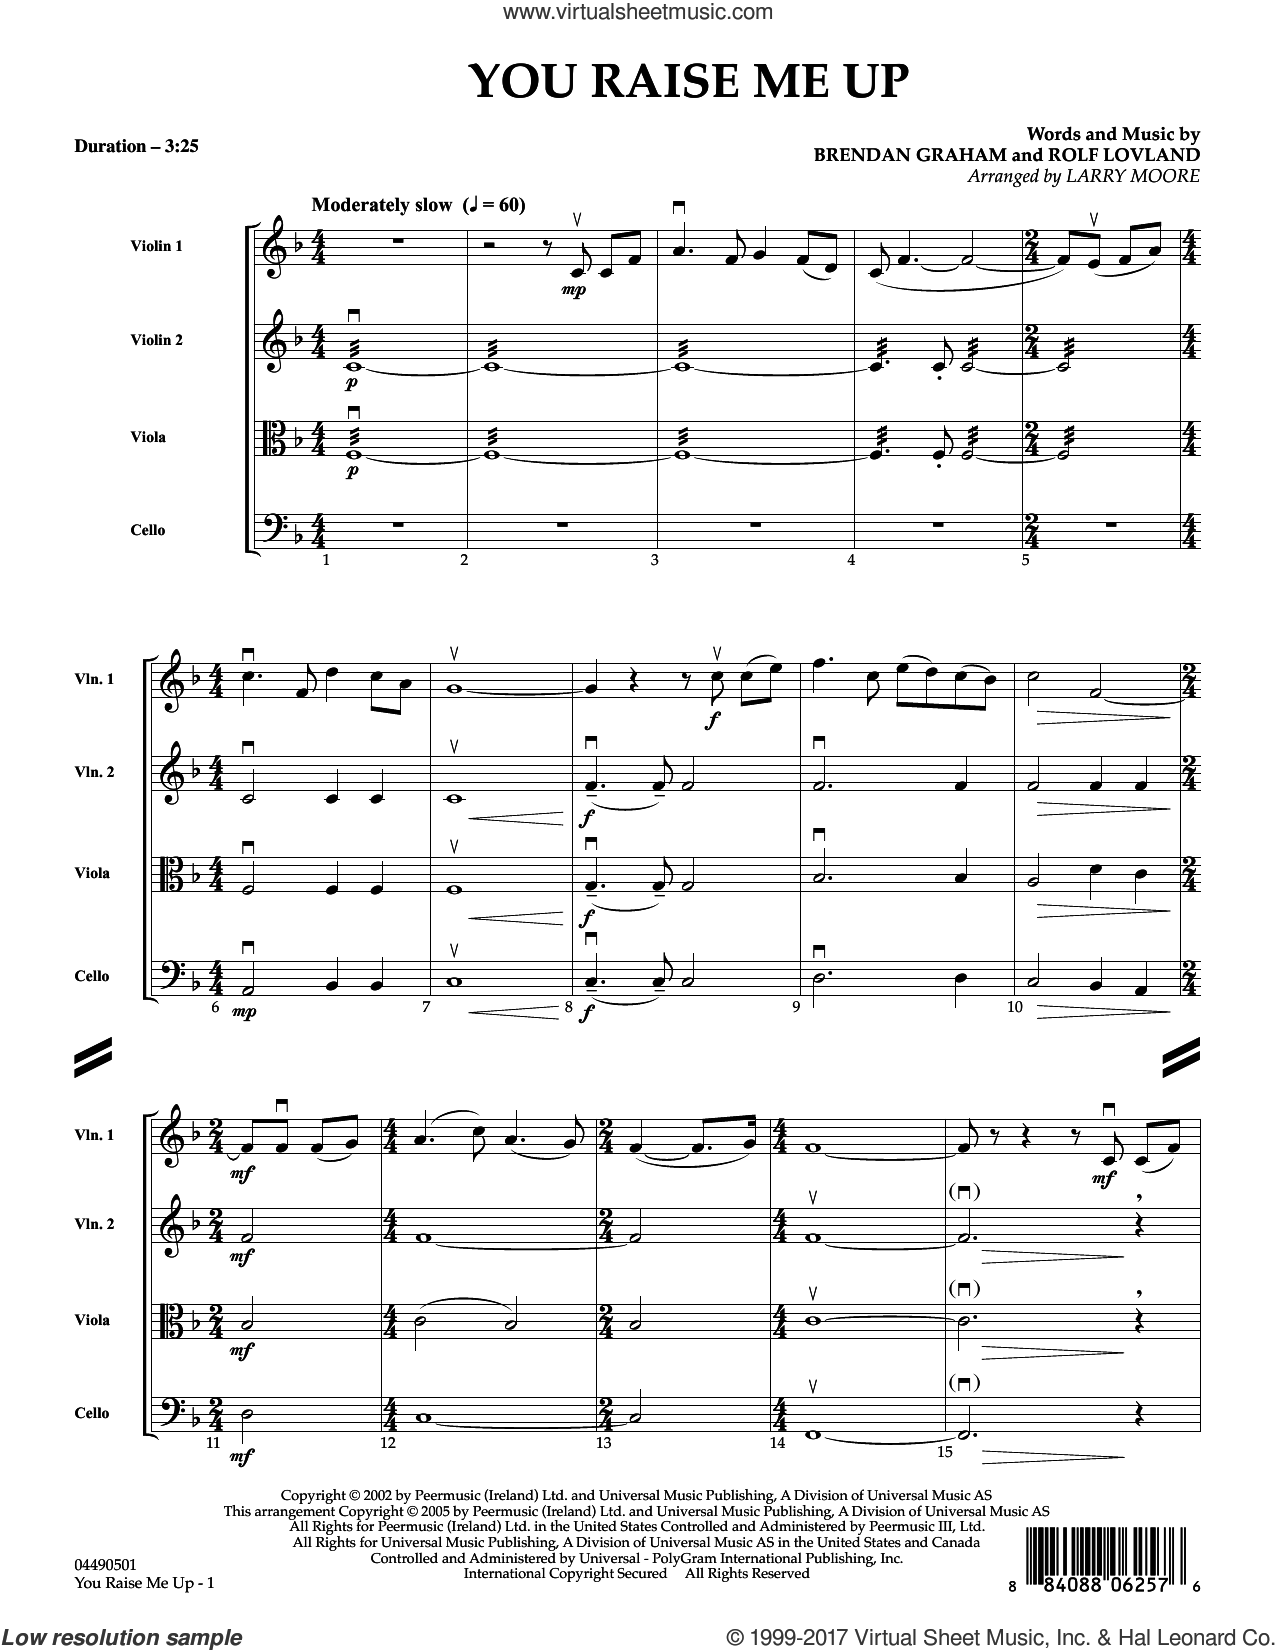 You Raise Me Up (COMPLETE) sheet music for string quartet (Strings) by Josh Groban, Brendan Graham, Larry Moore, Rolf Løvland, Secret Garden and Rolf Lovland, intermediate orchestra